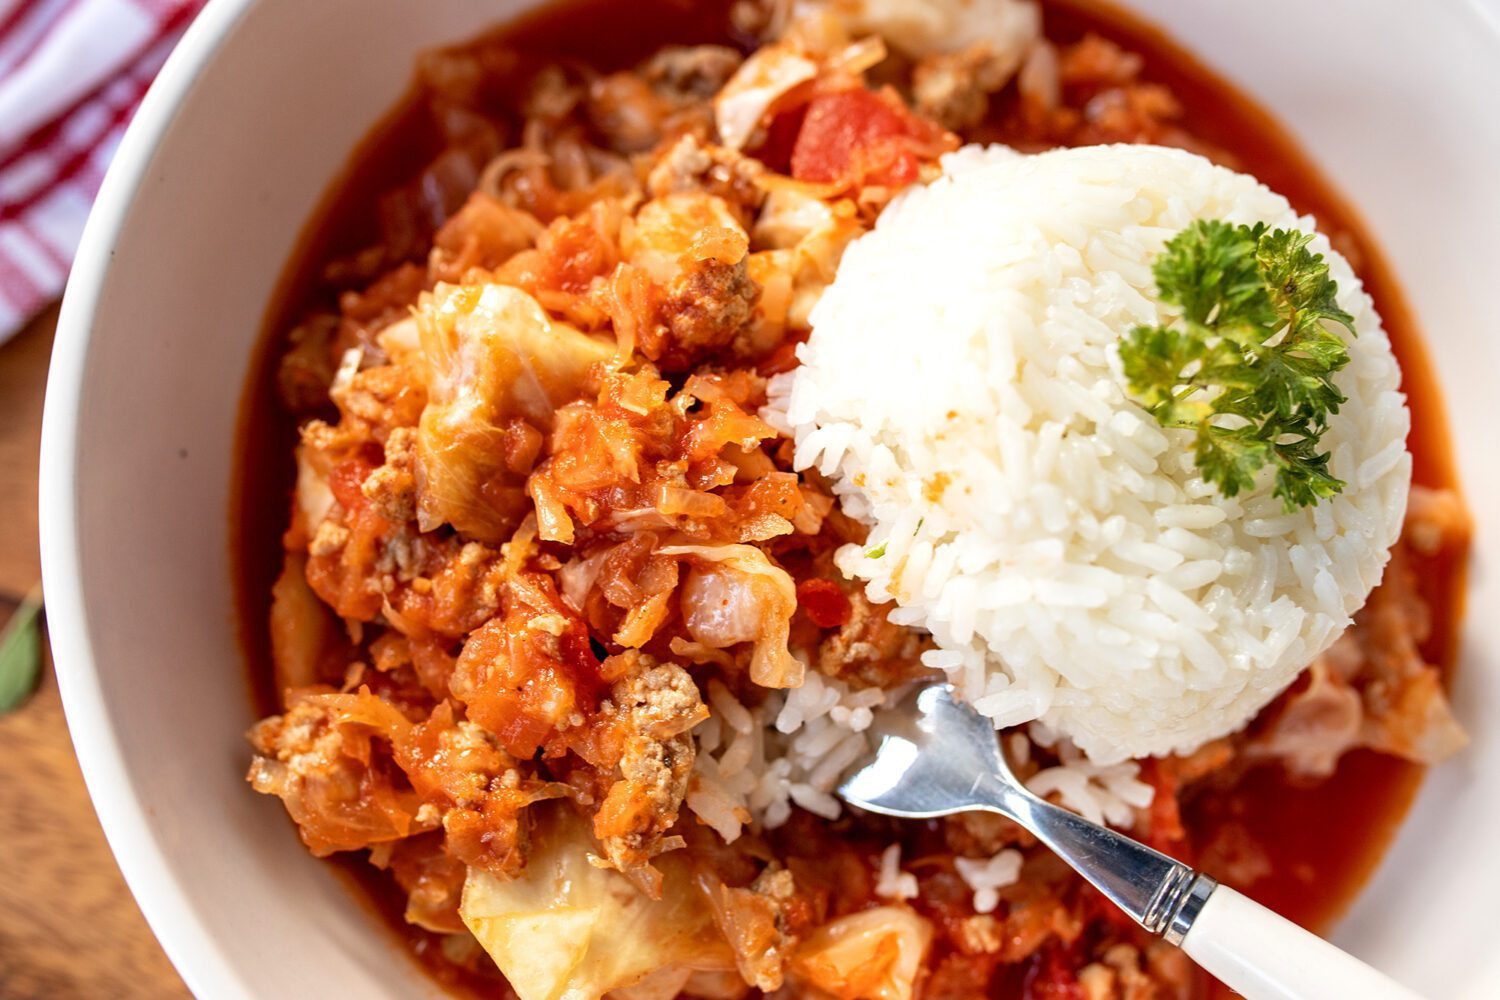 fork full of food next to a scoop of rice